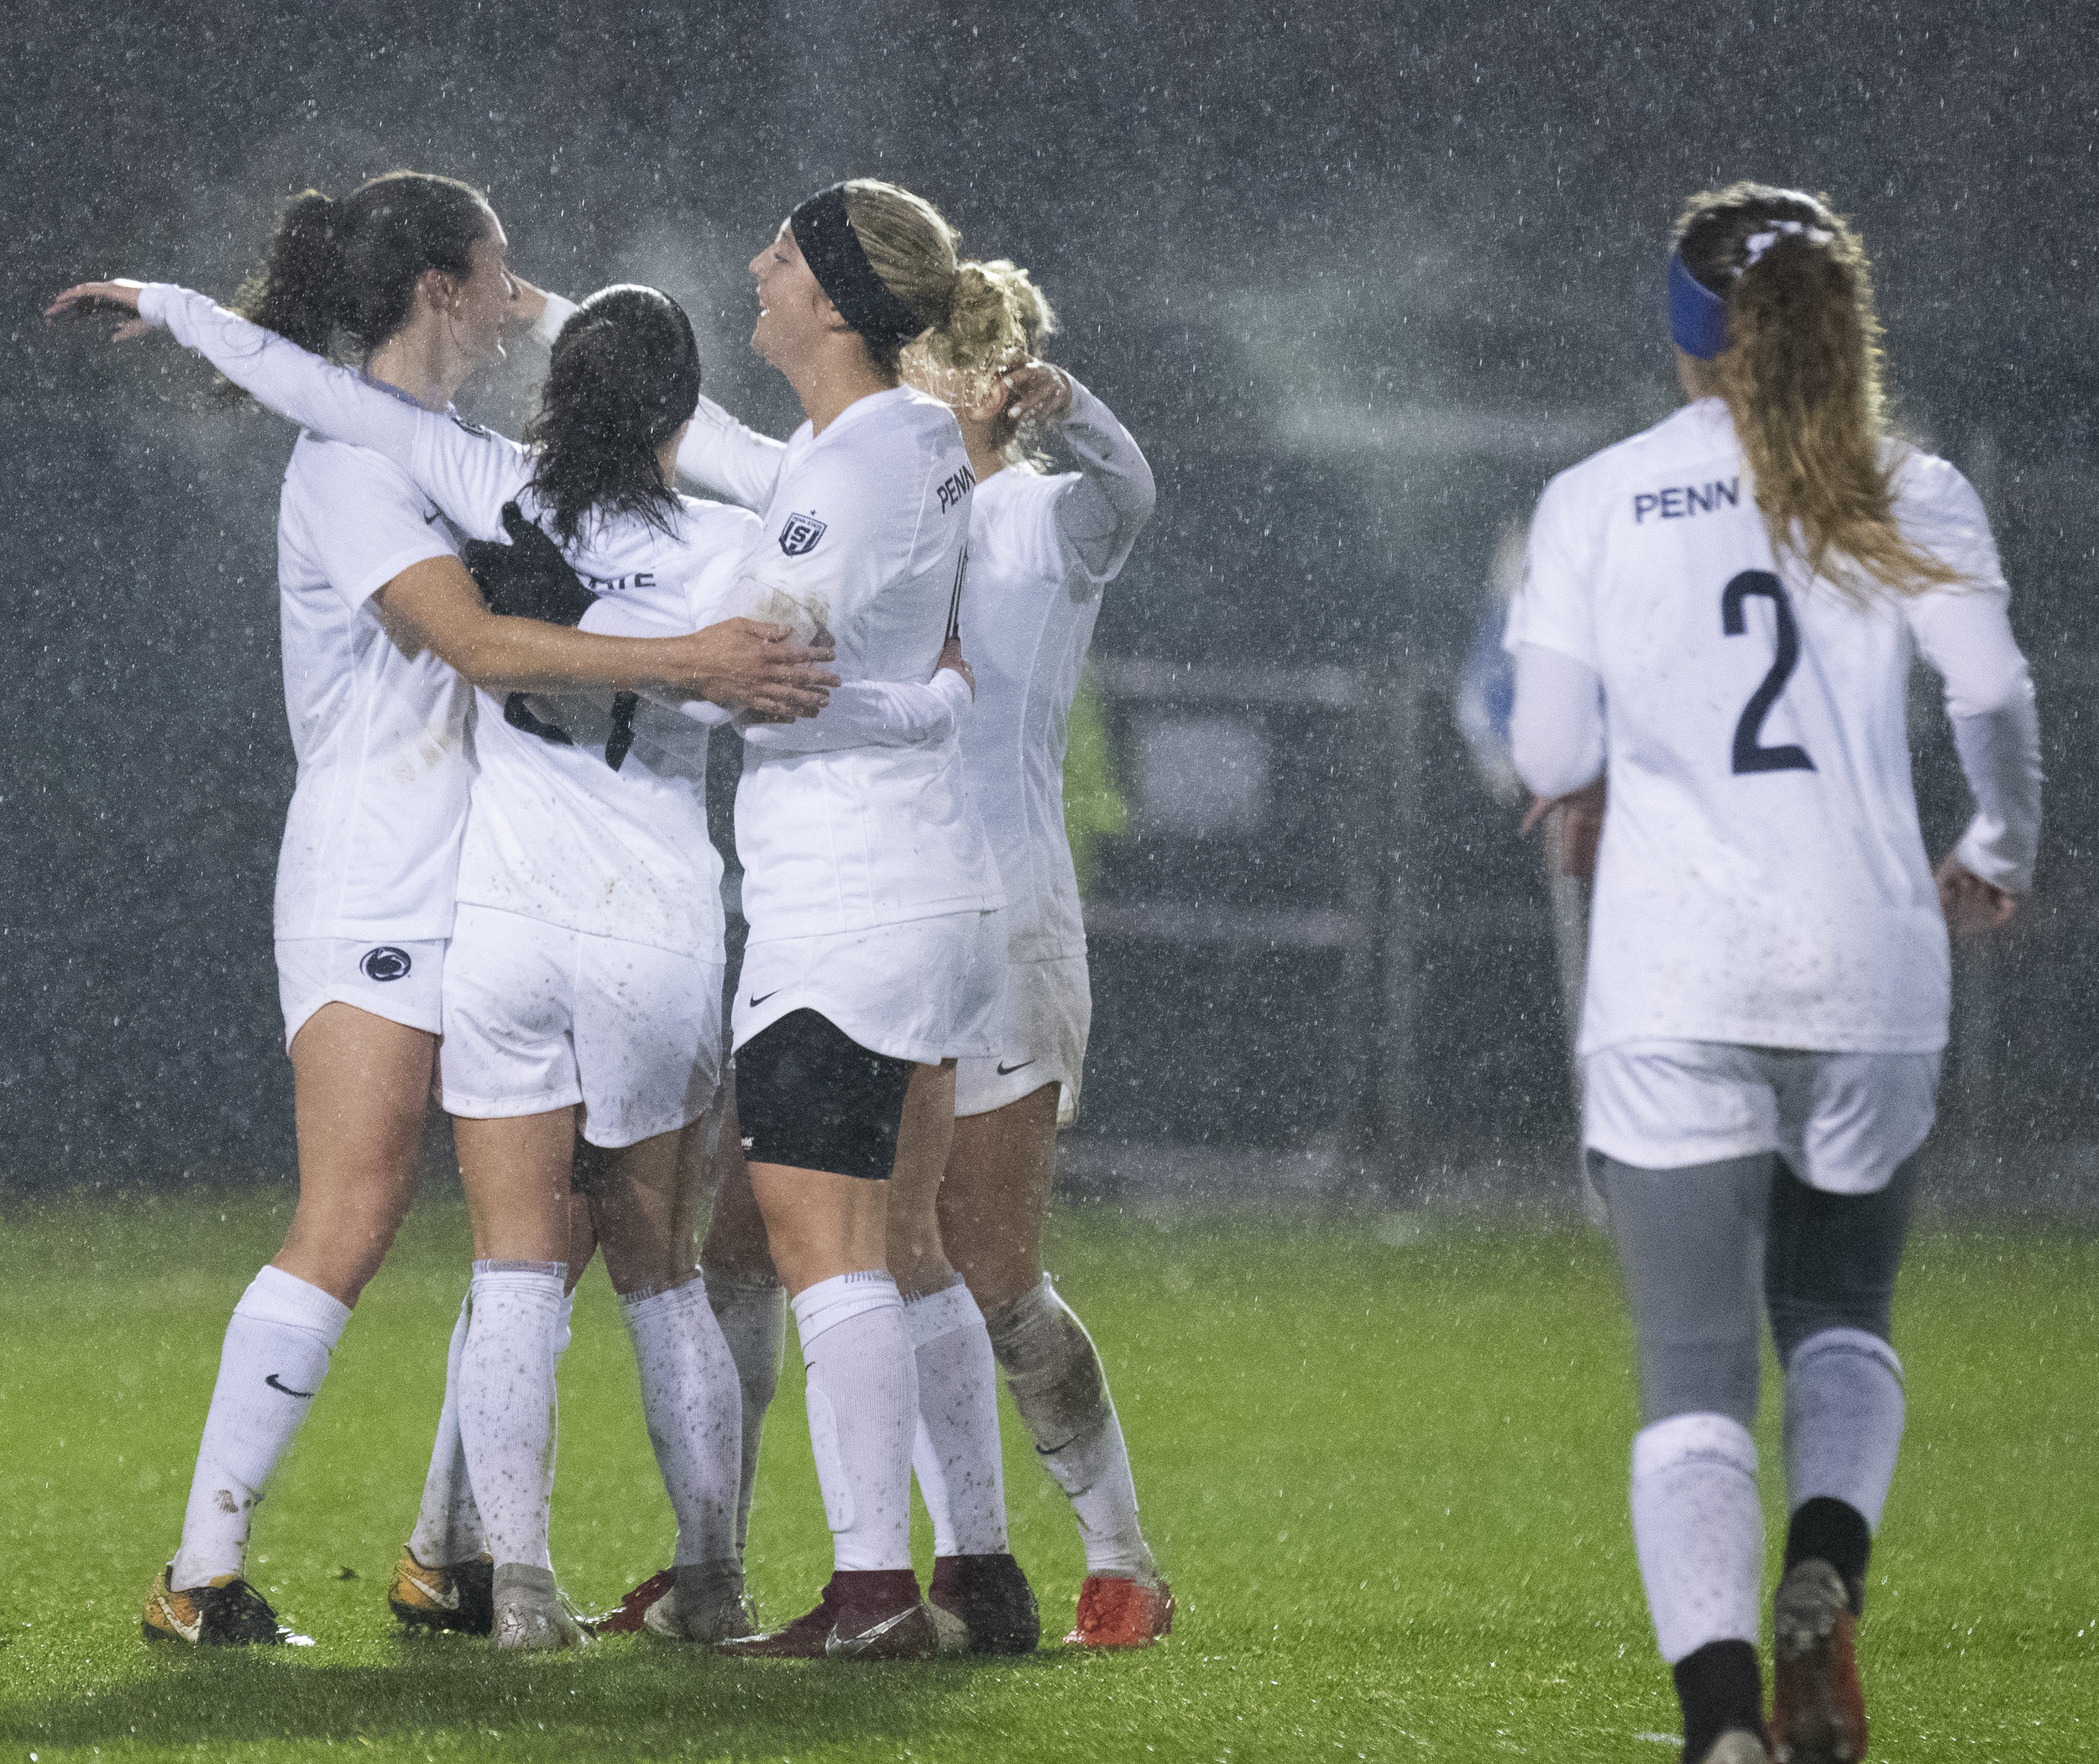 Penn State women's soccer celebrate scoring during the NCAA tournament first round game against Bowling Green at Jeffrey Field on Friday, Nov. 9, 2018. The Nittany Lions defeat Bowling Green 4-1 and advance to the second round of the NCAA Tournament. | Photo by: Noah Riffe